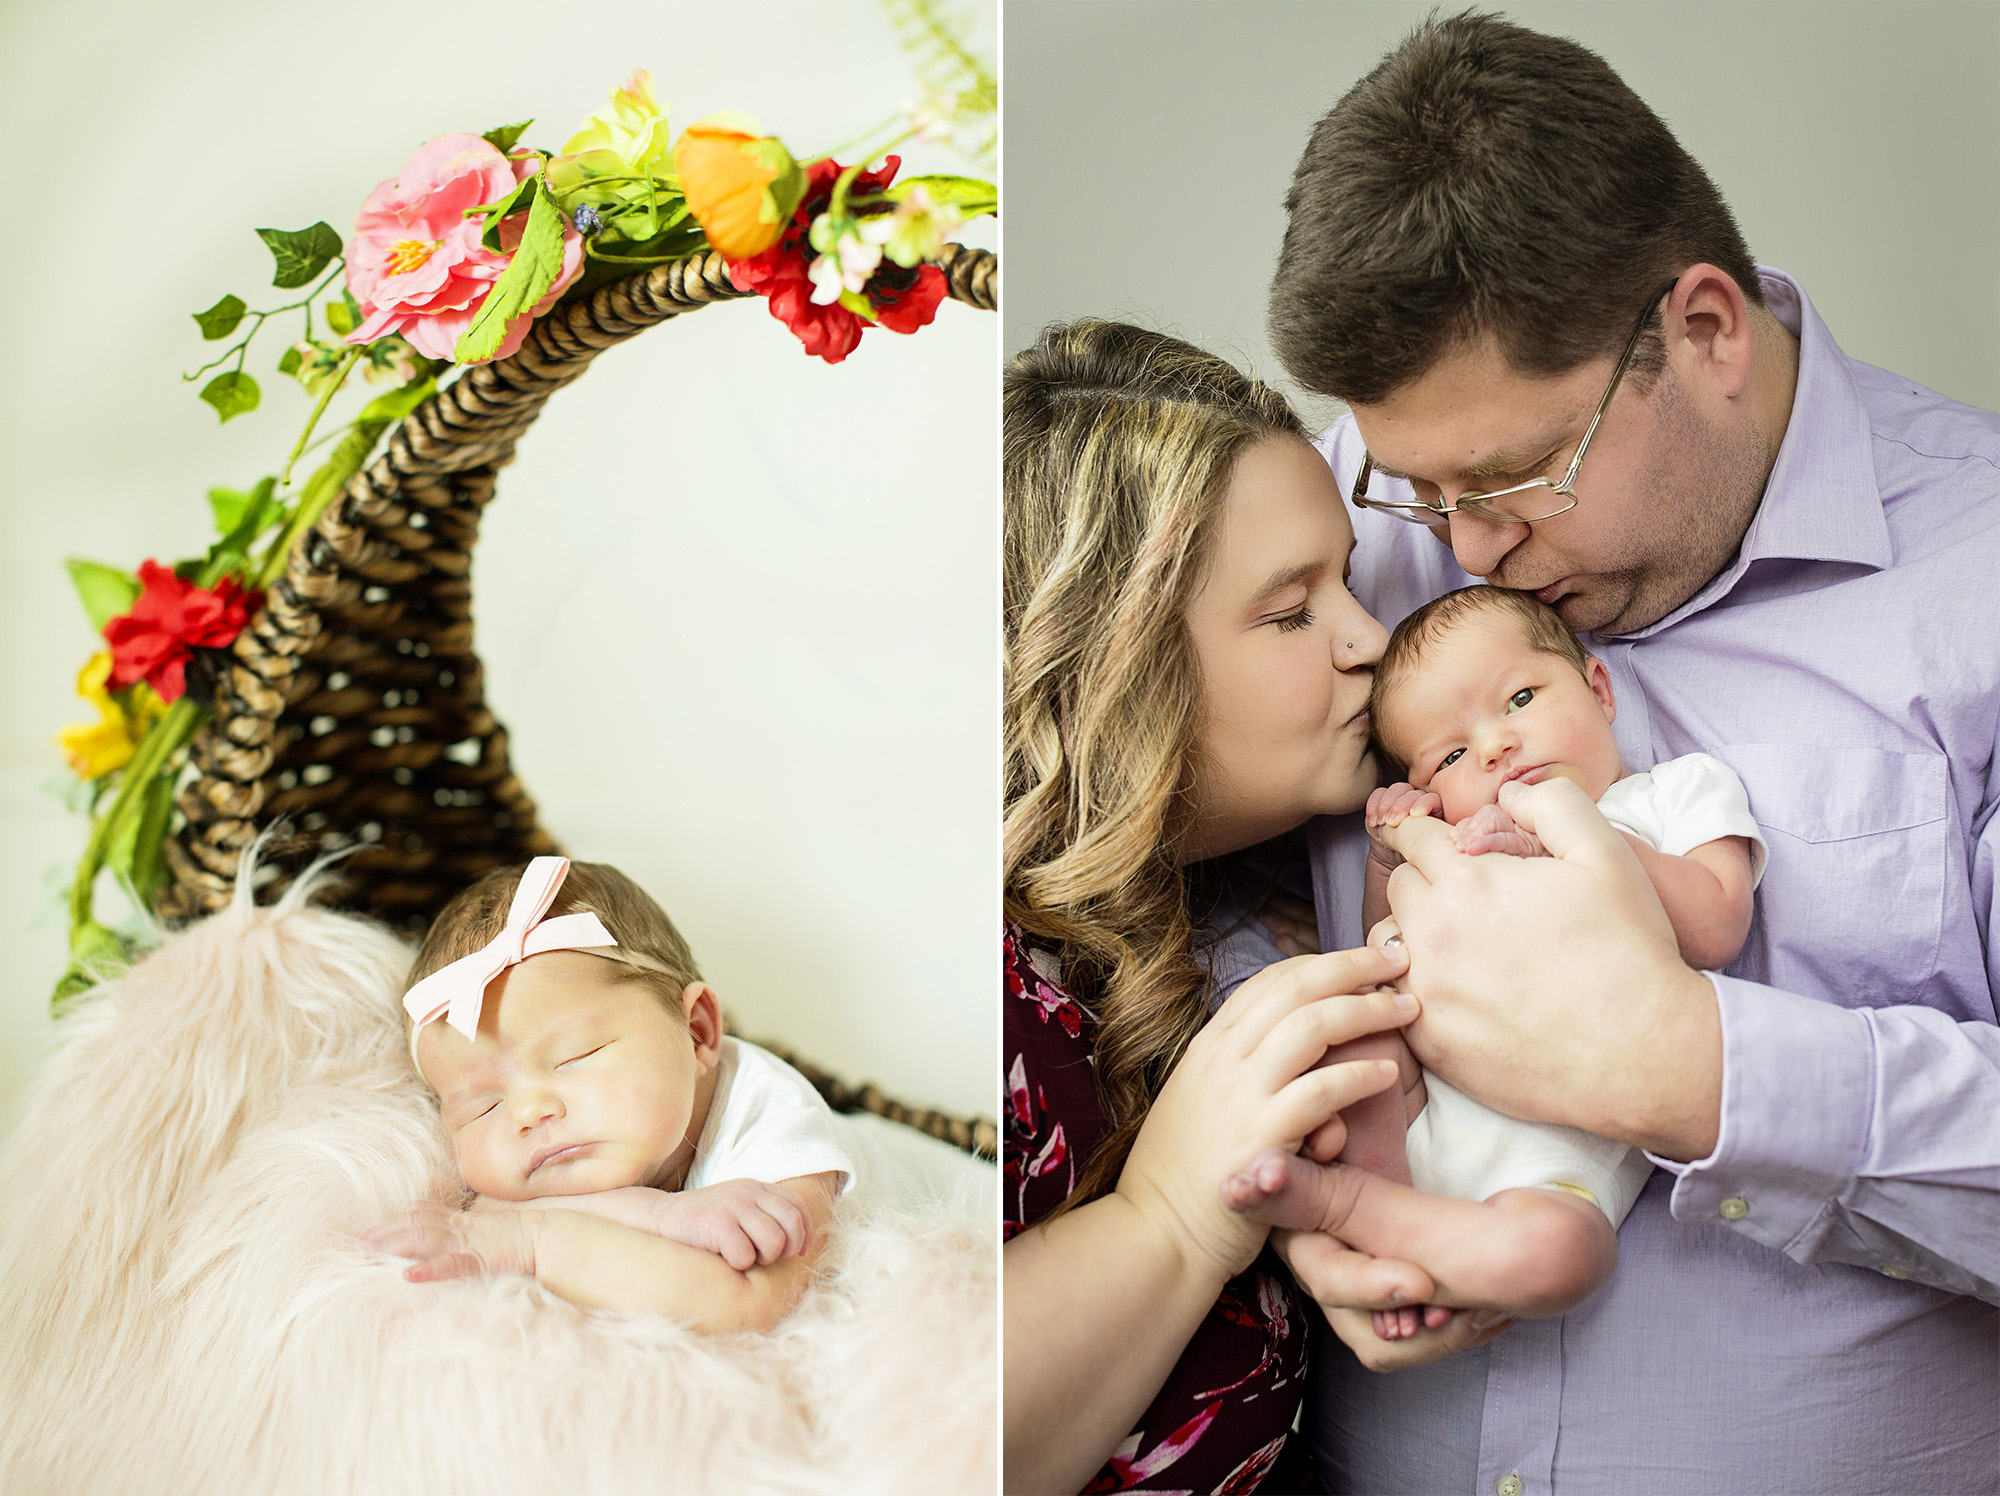 Seriously_Sabrina_Photography_Lexington_Kentucky_Studio_Family_Newborn_Portraits_Wood_11.jpg